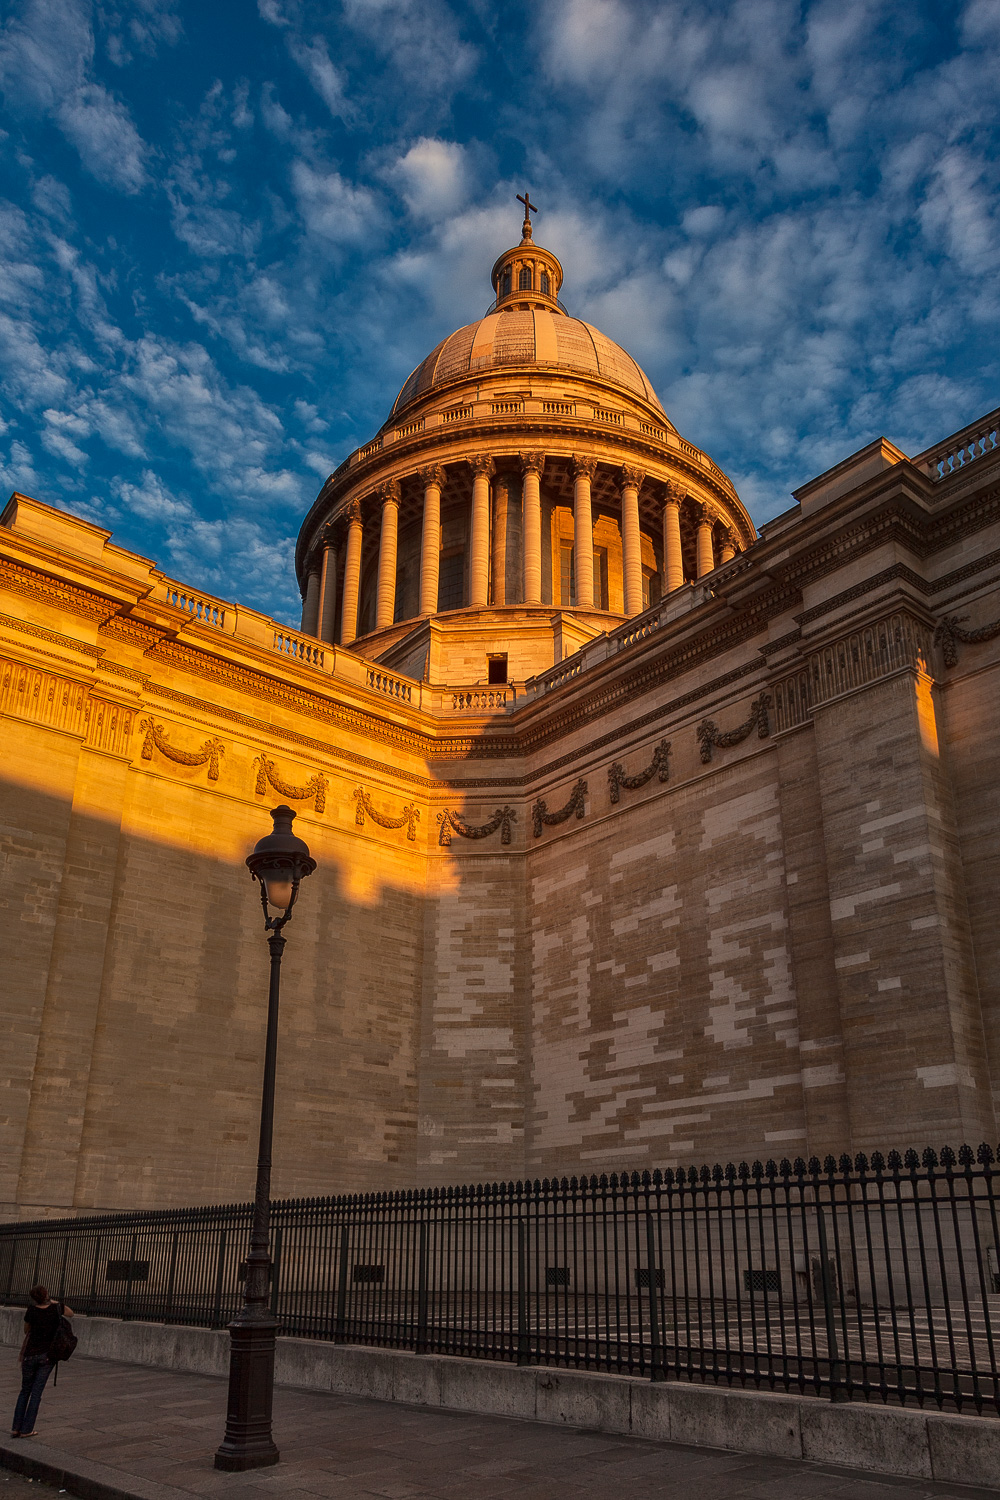 Sunset  illuminates the dome on the top of the  Pantheon  in  Paris, France .